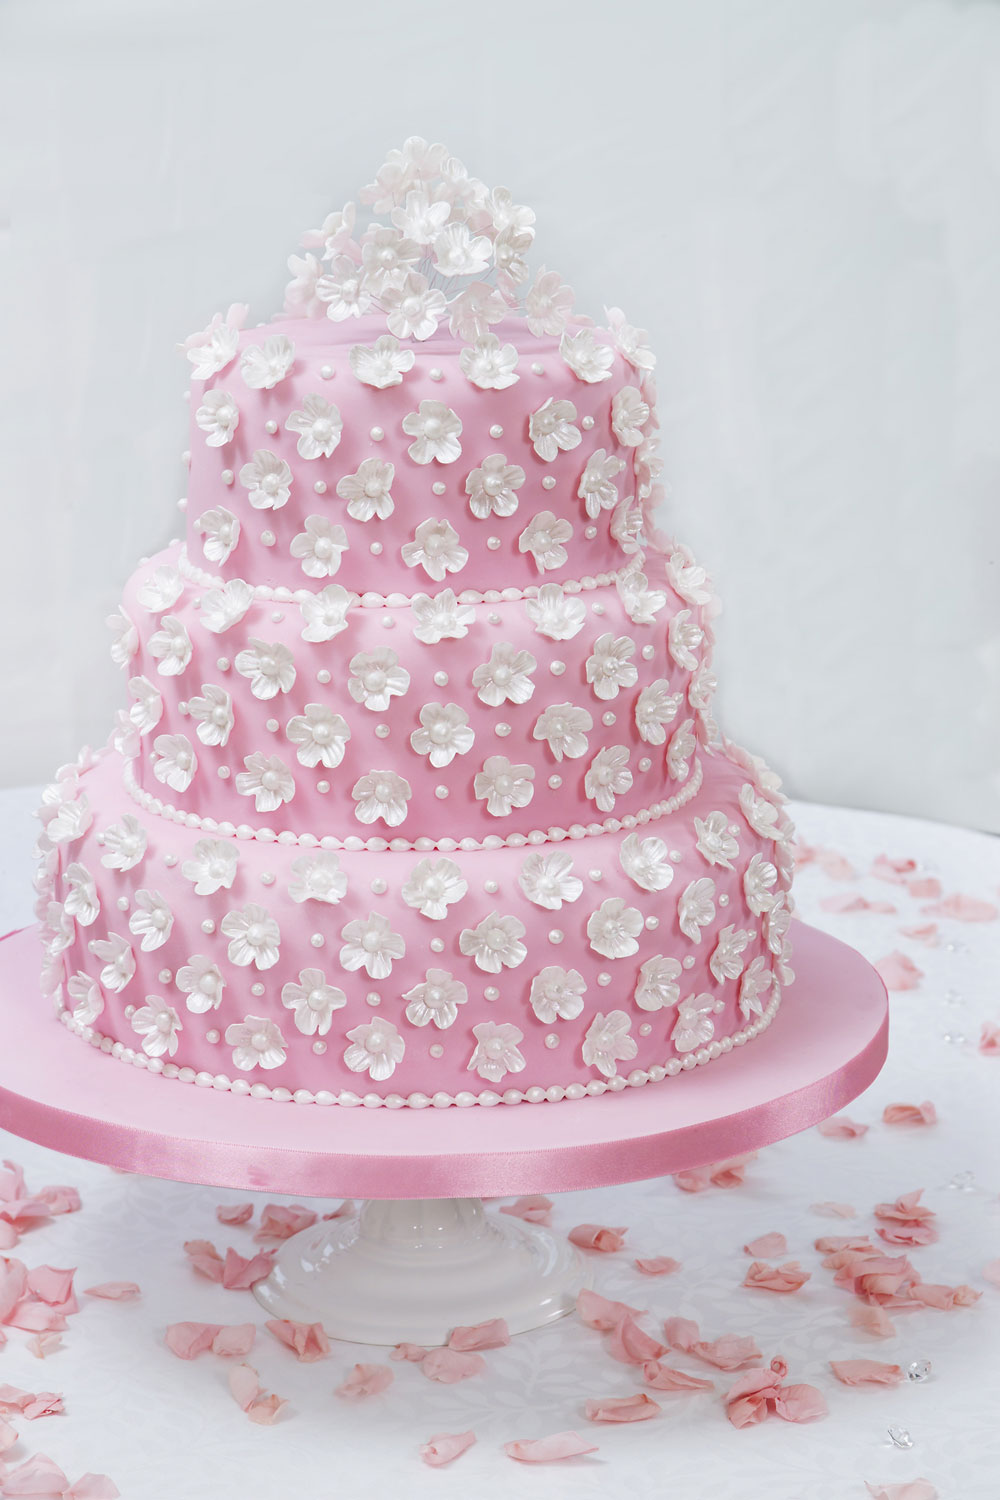 How To Make A Fondant Fancy Wedding Cake